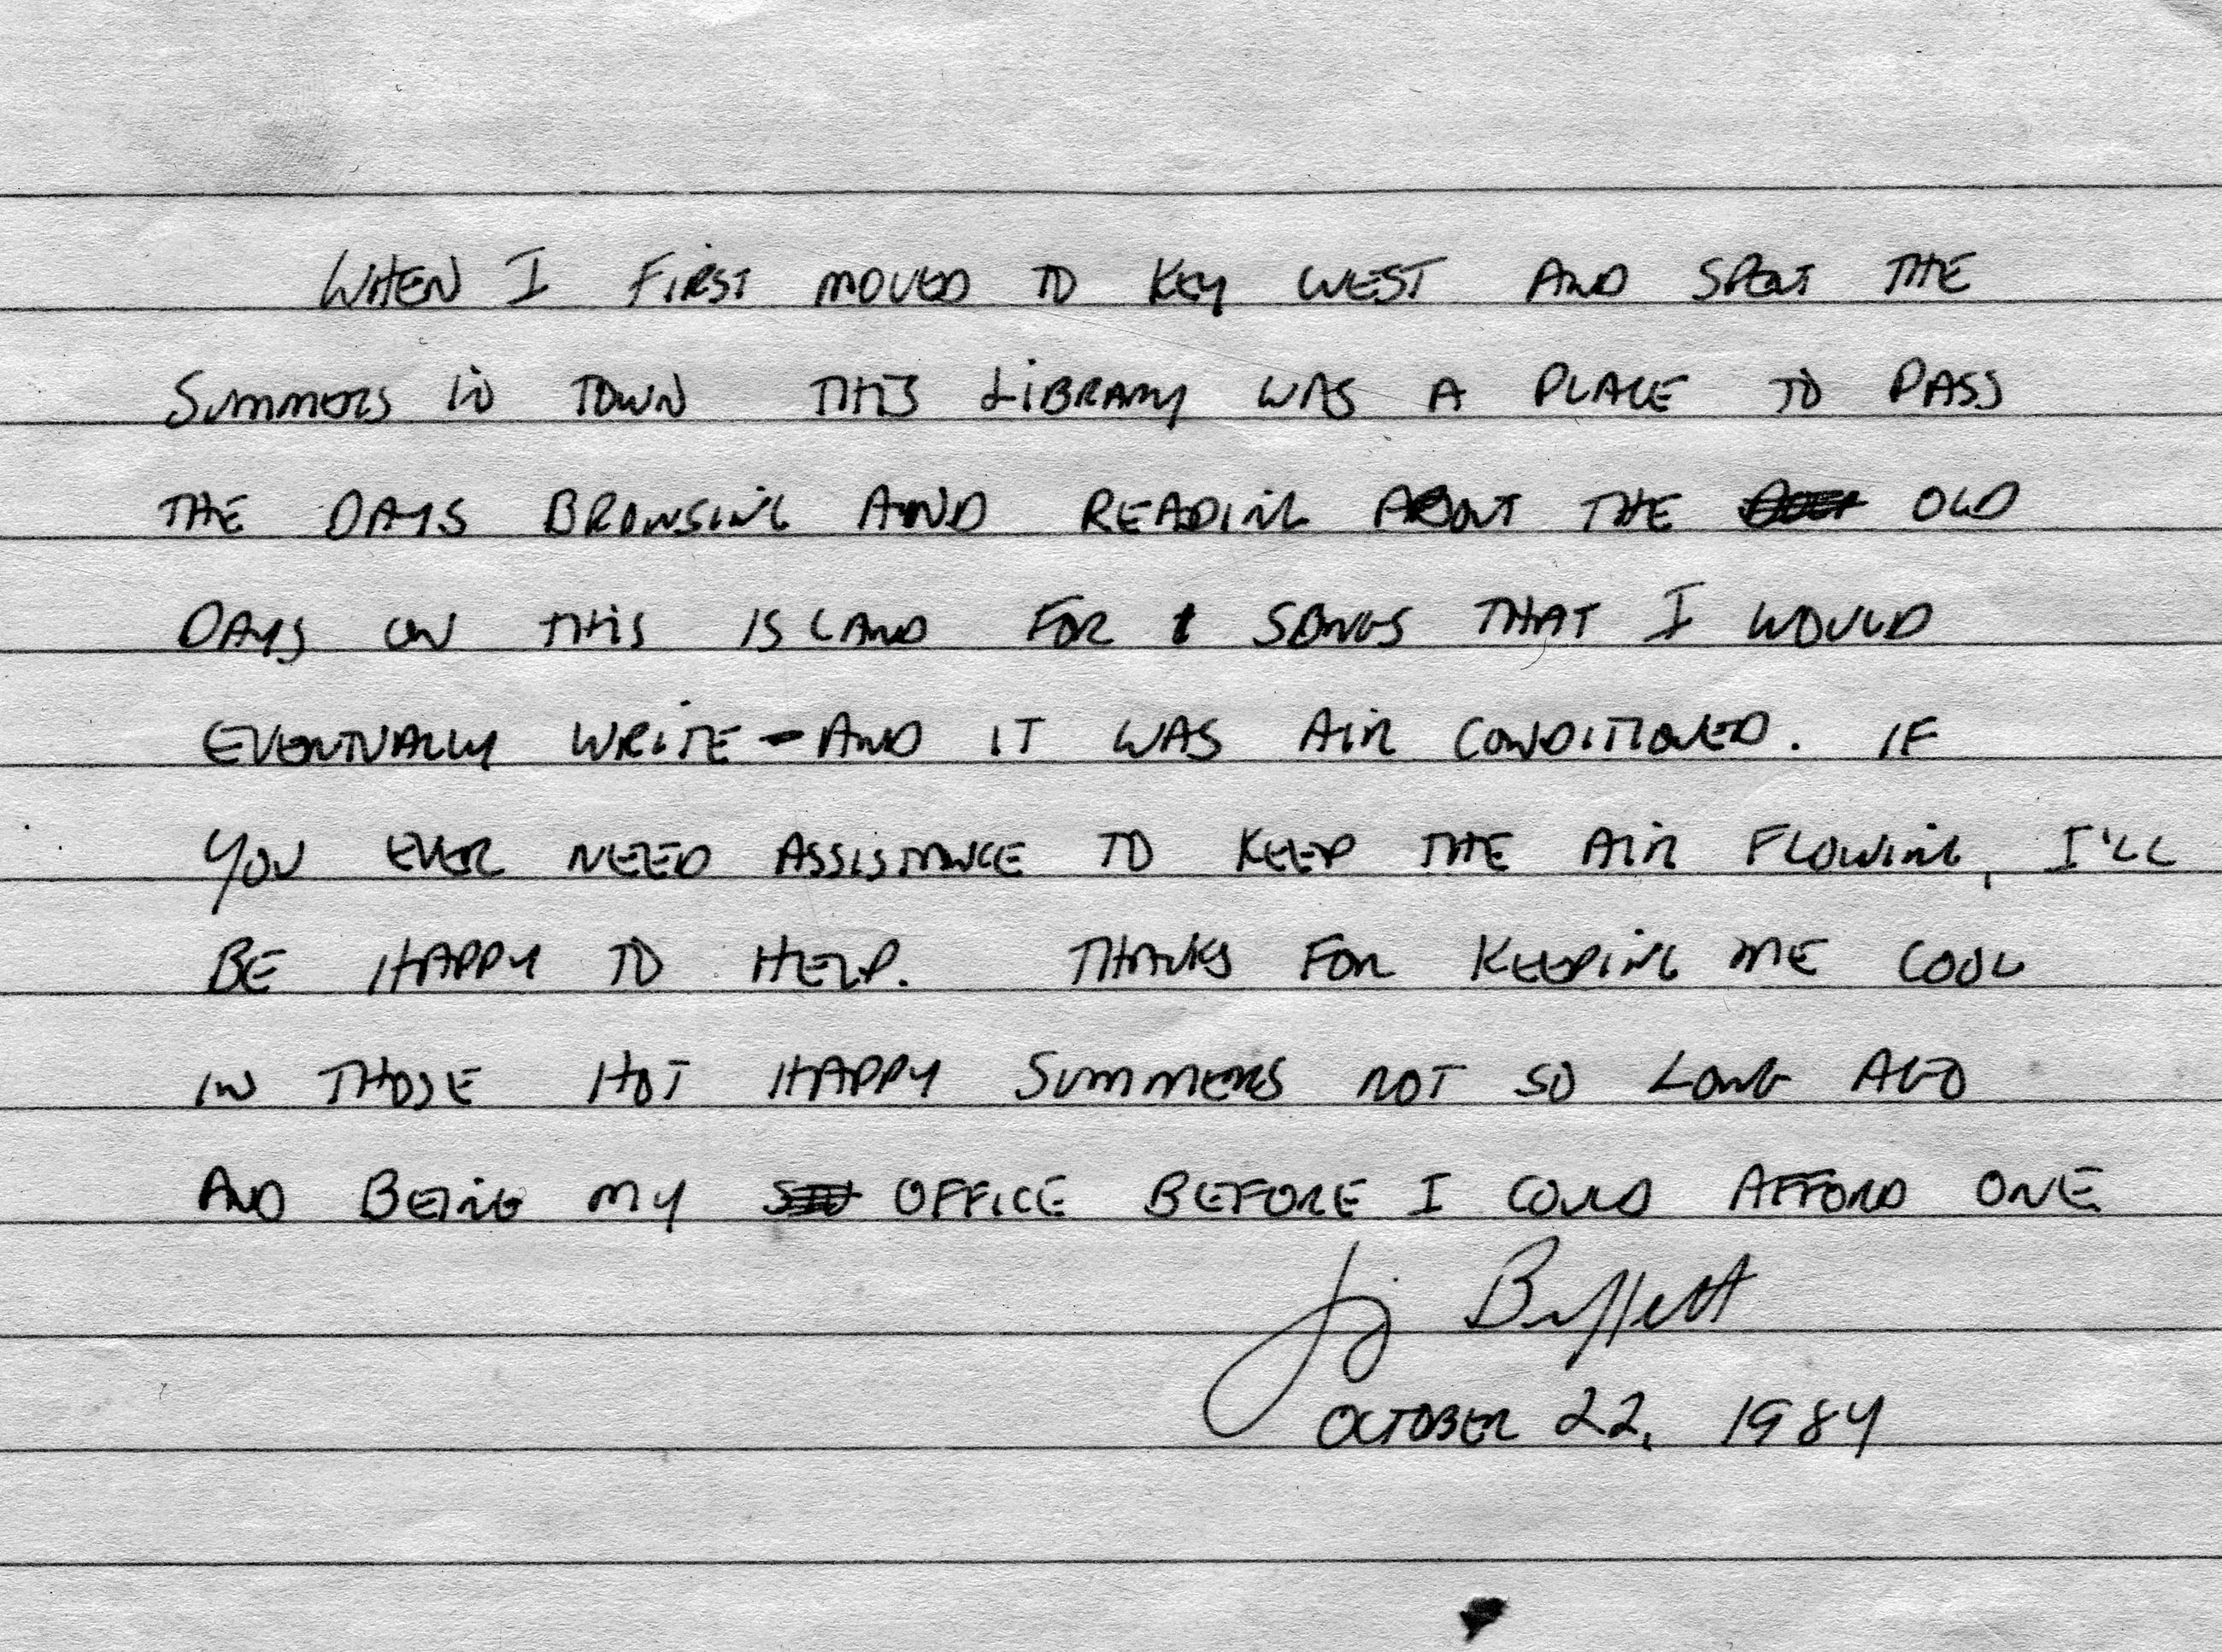 Jimmy Buffett's handwritten note to Key West library (1989)